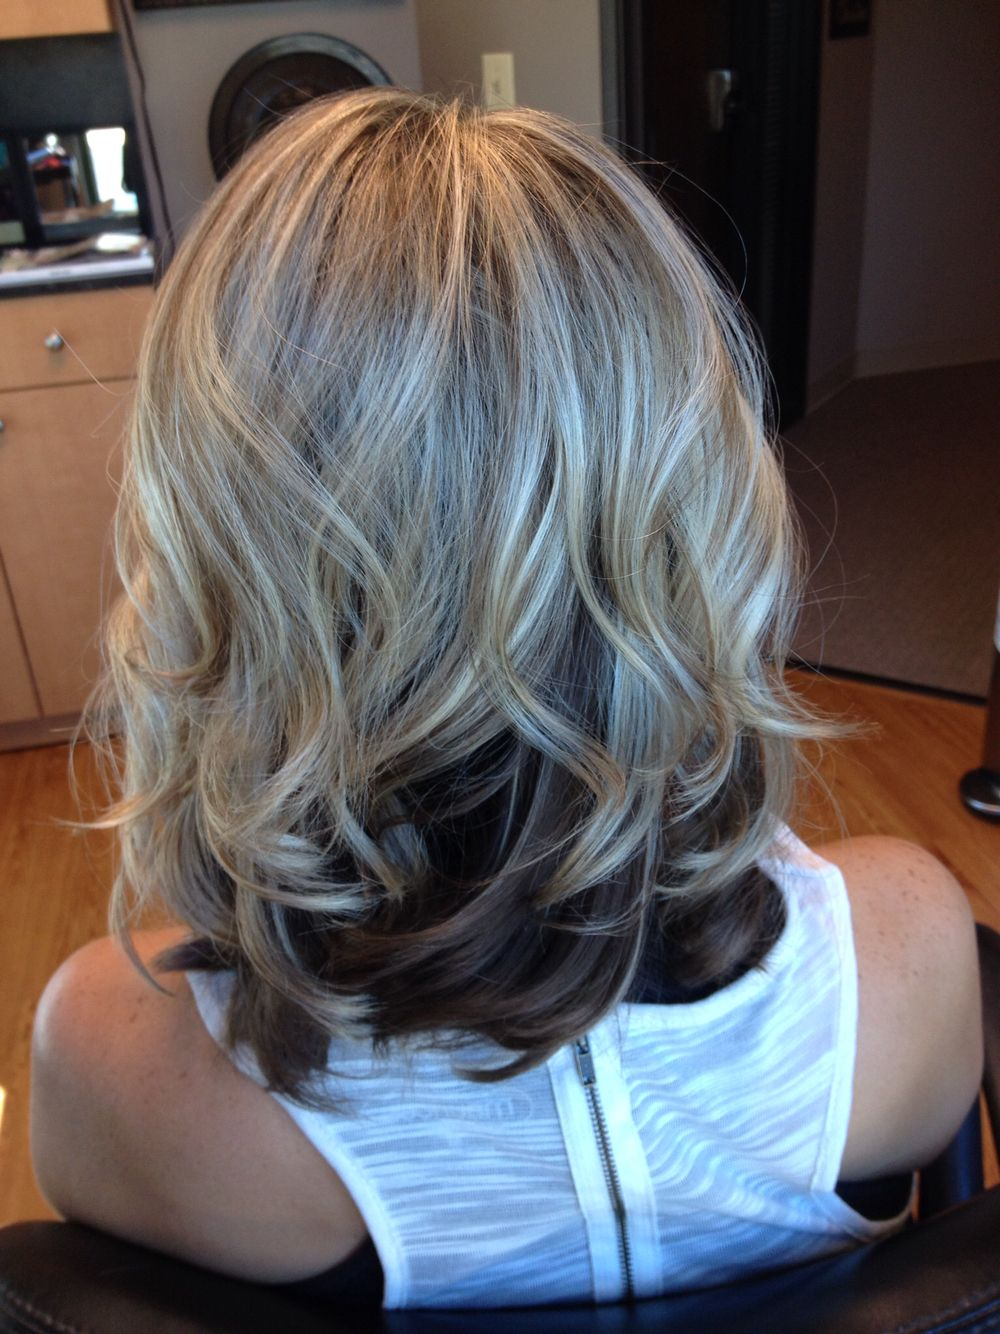 blonde top, dark underneath | hair by melissa lobaito | hair